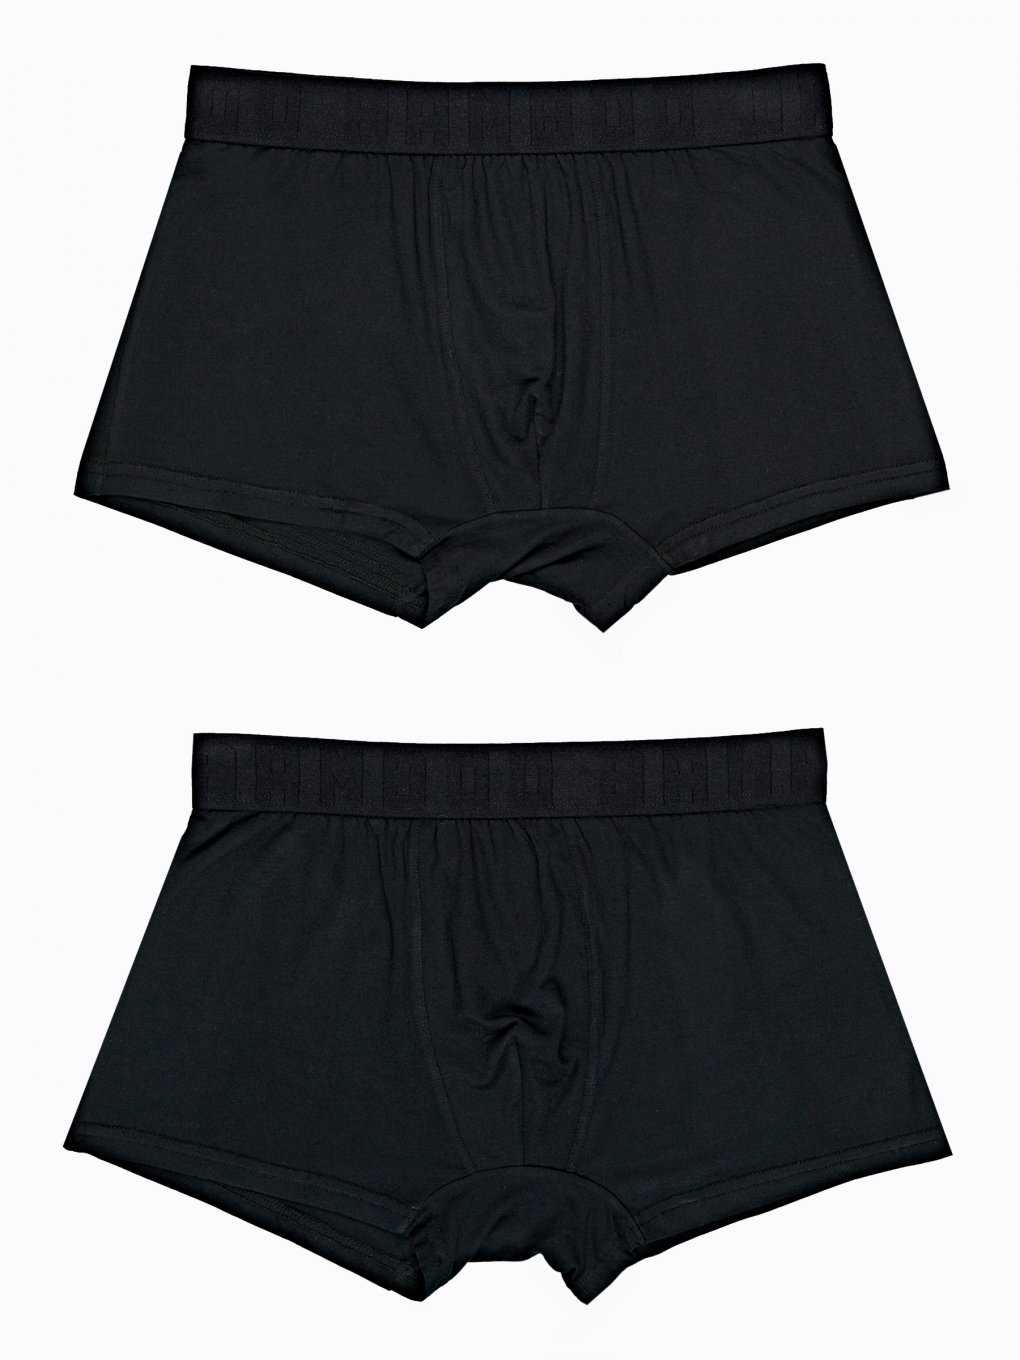 2-pack basic bamboo boxers